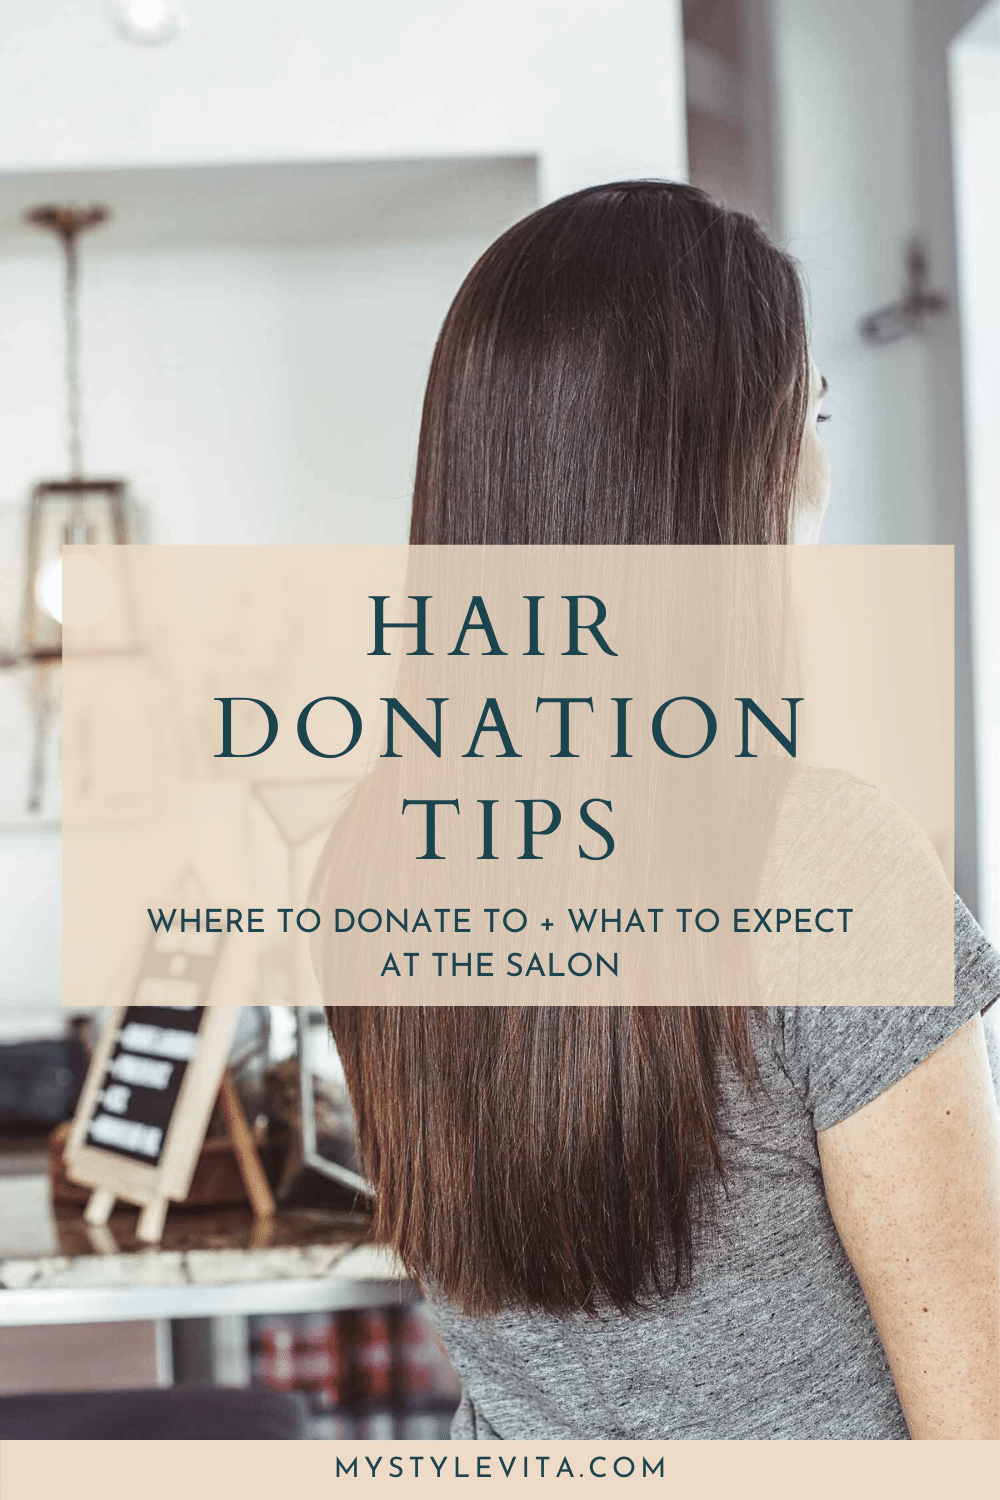 How To Donate Your Hair Tips In 2020 Donate Your Hair Donating Hair Hair